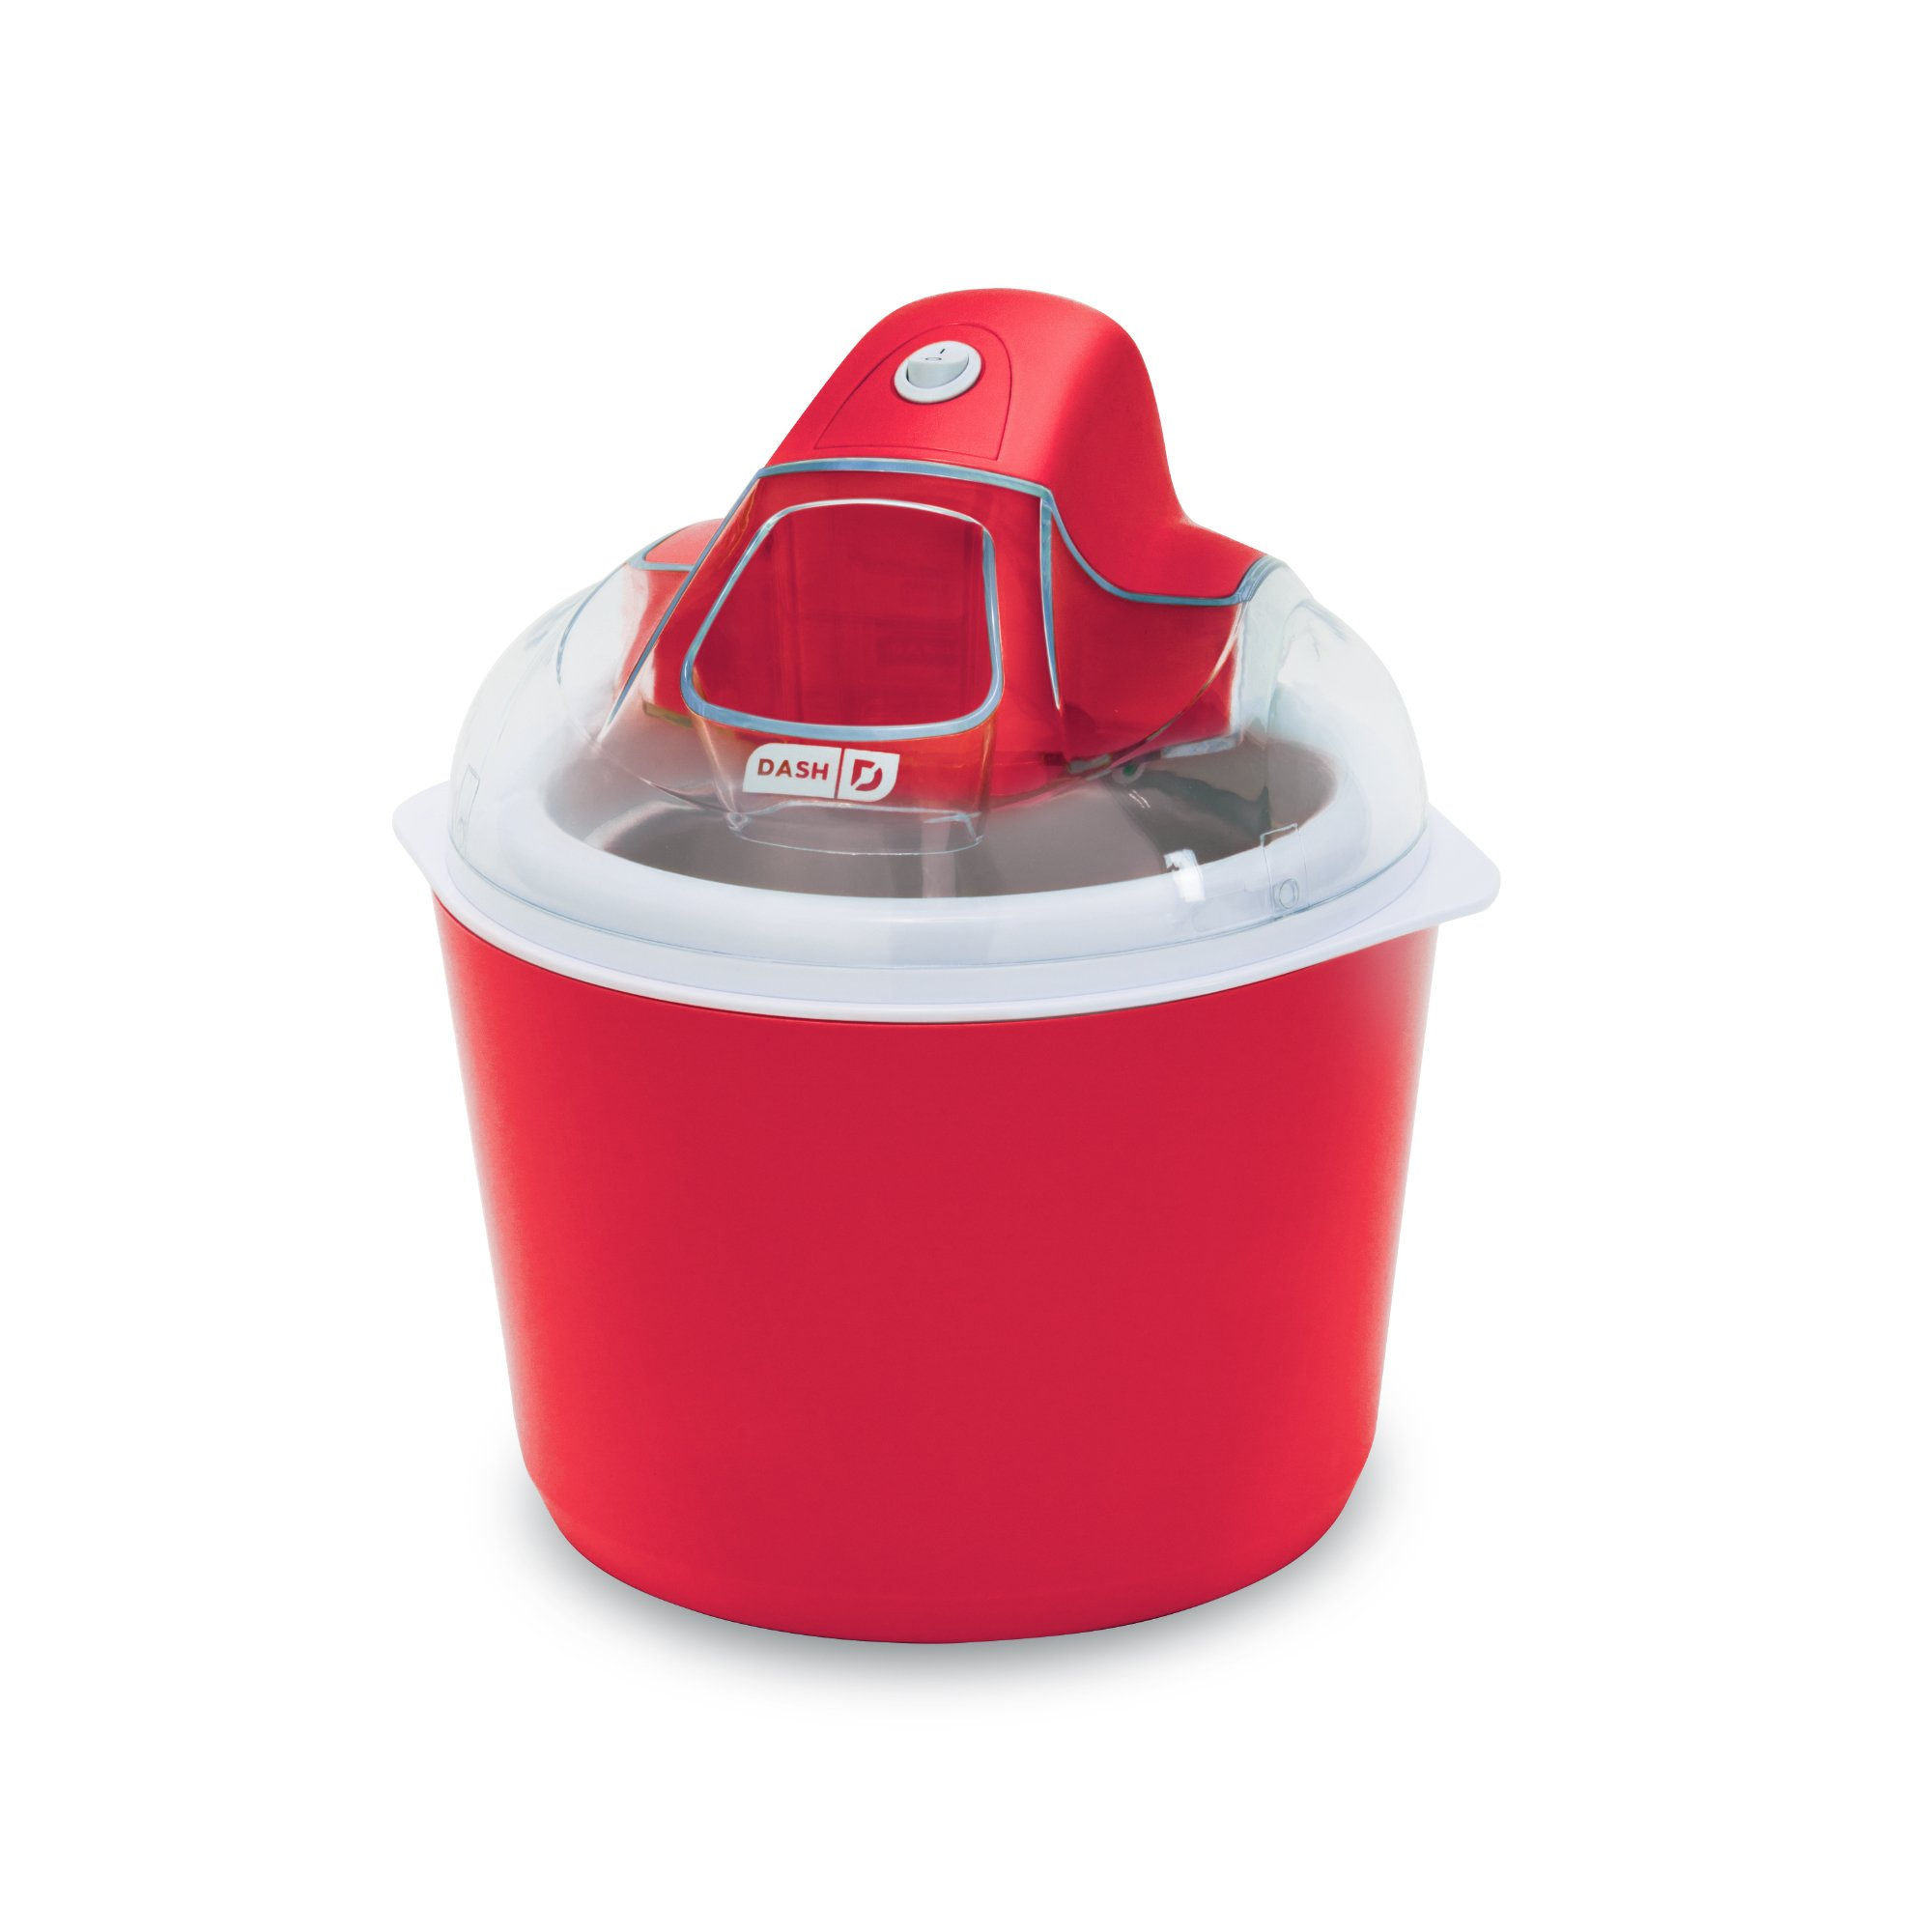 DASH DIC001RD Deluxe Ice Cream Frozen Yogurt and Sorbet Maker with Easy Ingredient Spout, Double-Walled Insulated Freezer Bowl and Free Recipes, 1 quart, Red